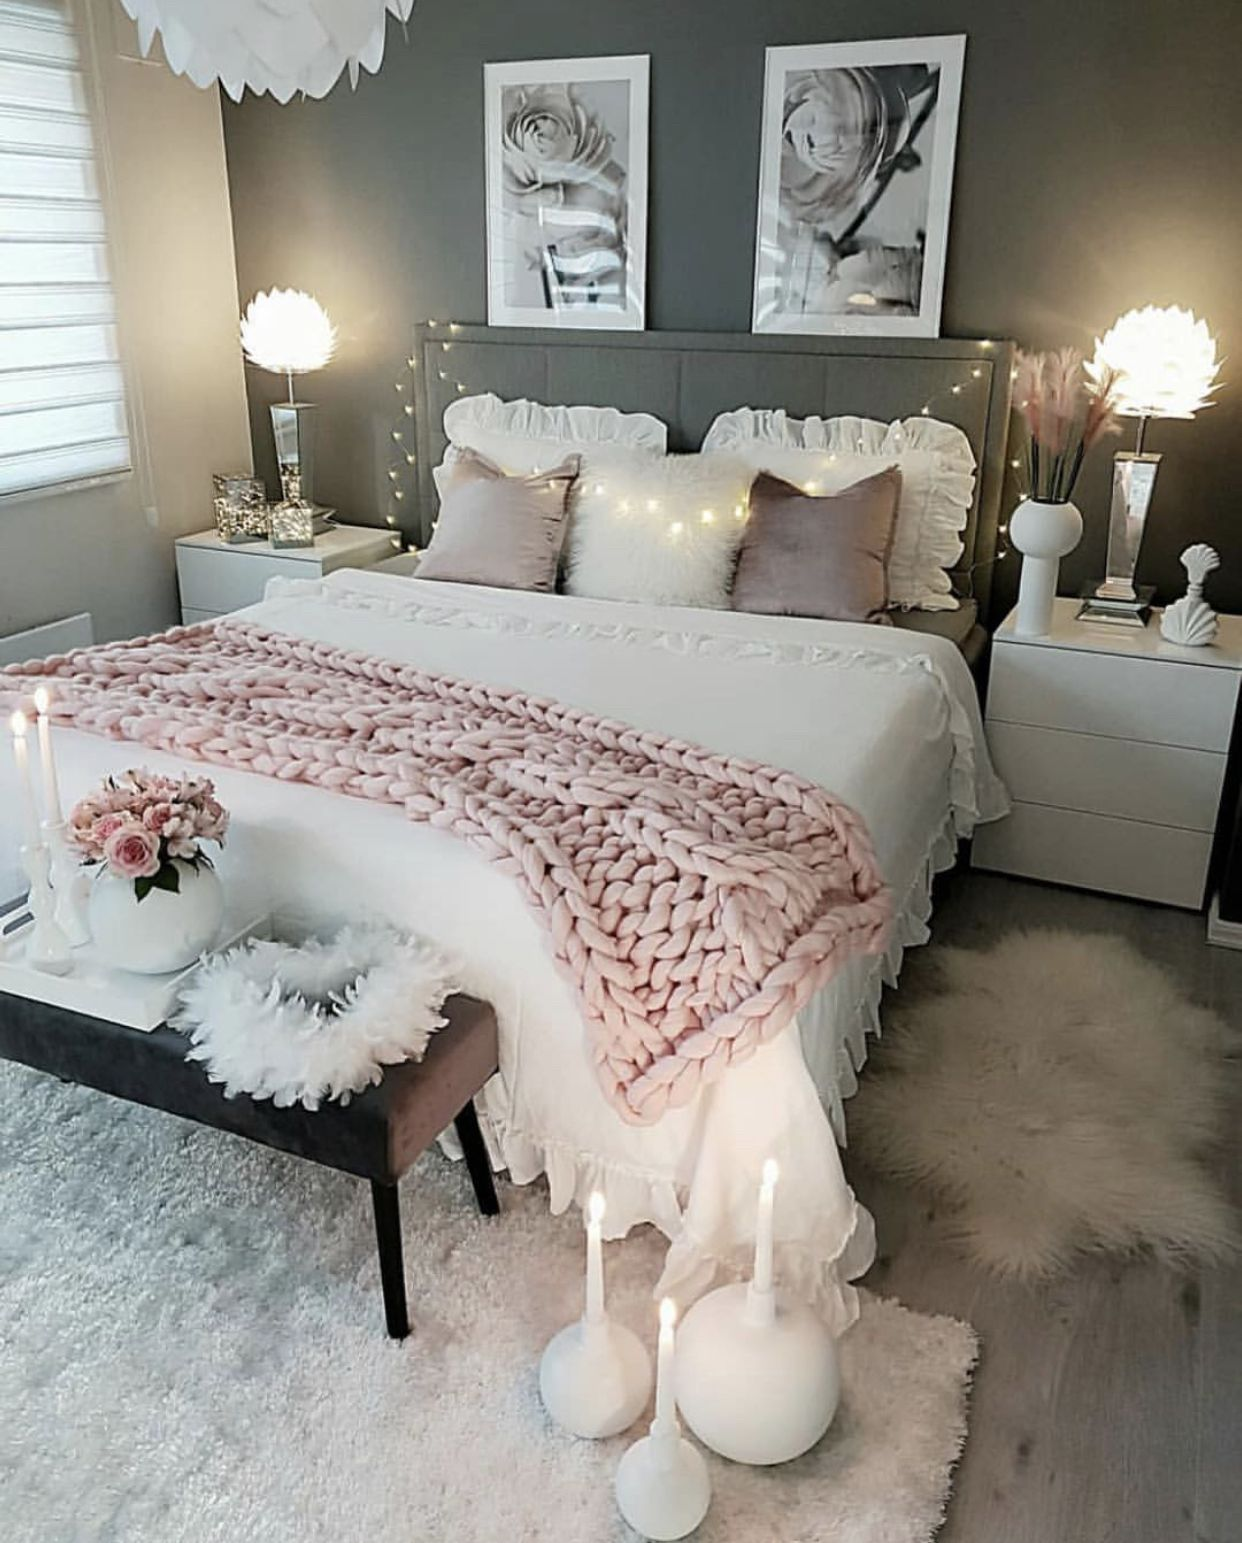 𝓗𝓮𝔂 Want To See More Pins Like This Or Maybe The Latest 𝒷𝑒𝒶𝓊𝓉𝓎 𝓉𝓇𝑒𝓃𝒹𝓈 Deco Chambre Parental Deco Chambre Coconing Decoration Chambre Ado